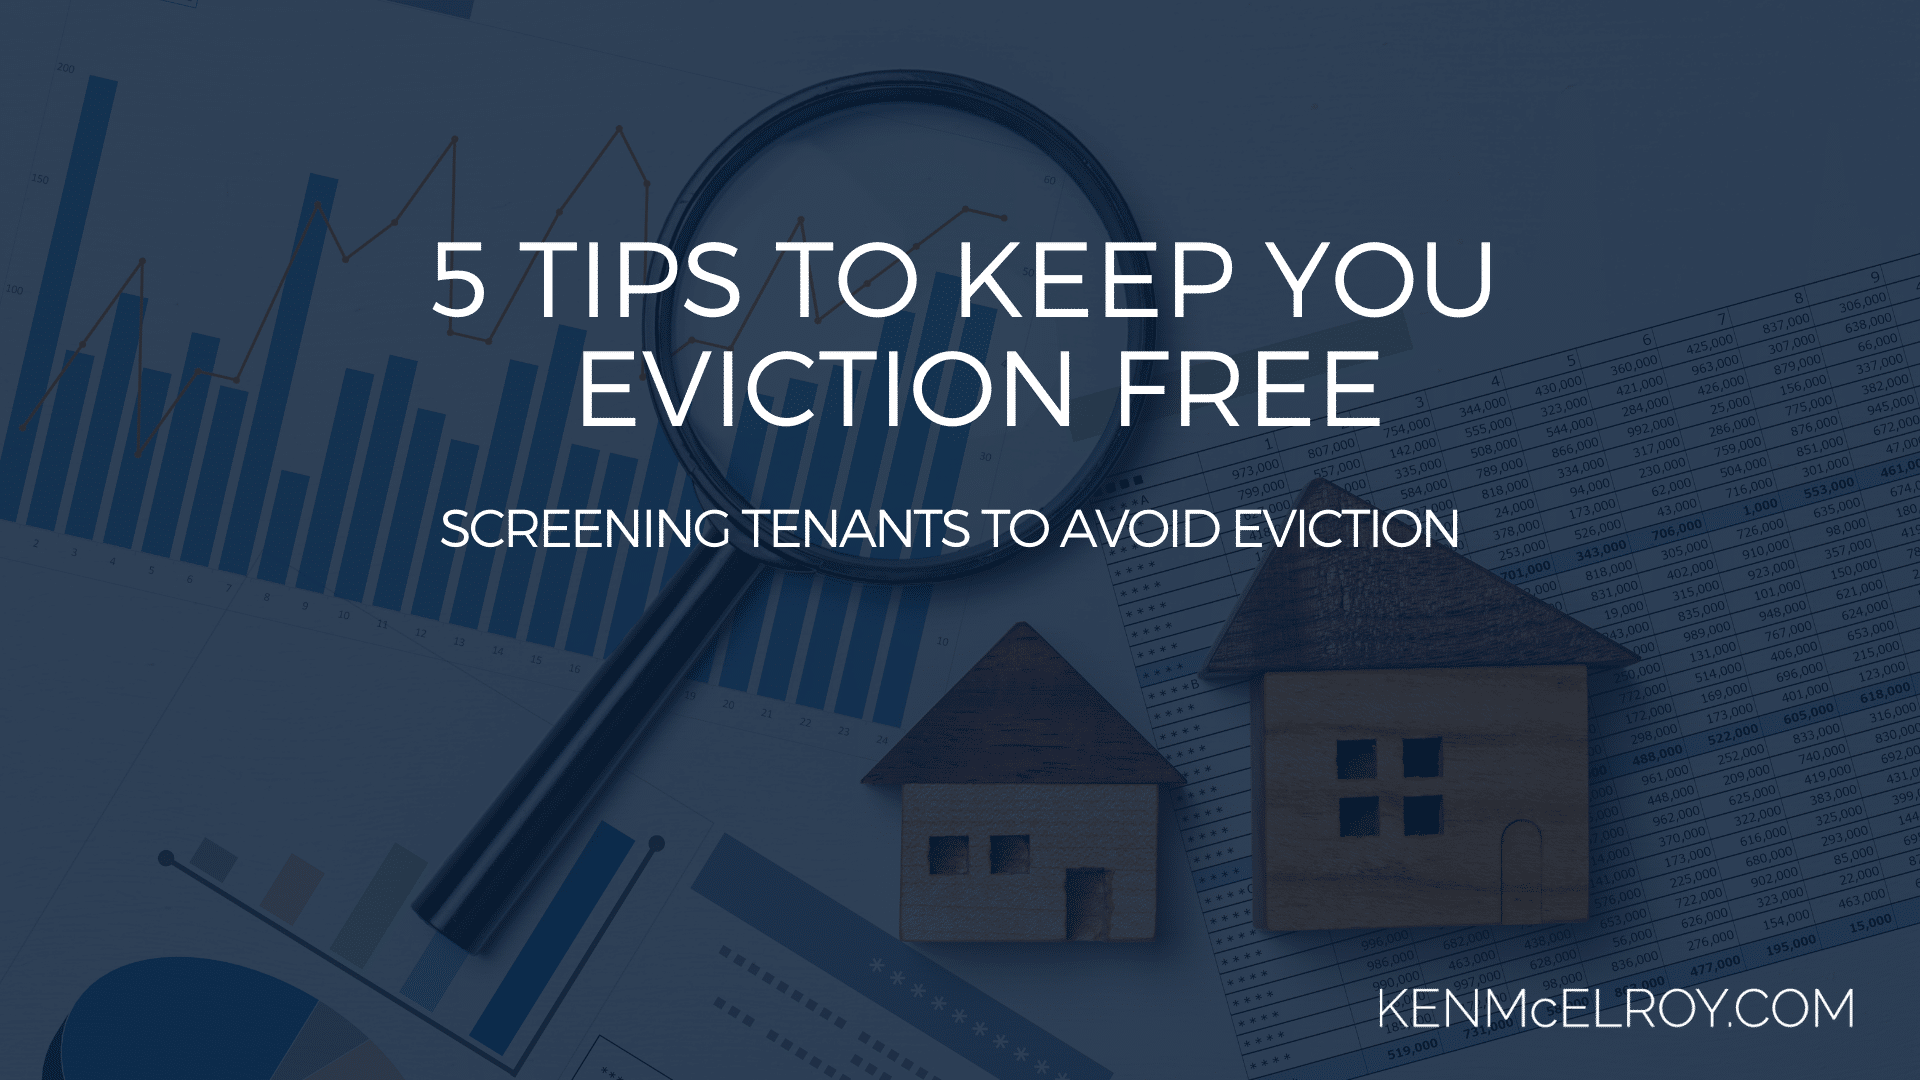 Screening tenants to avoid eviction | Ken McElroy Image